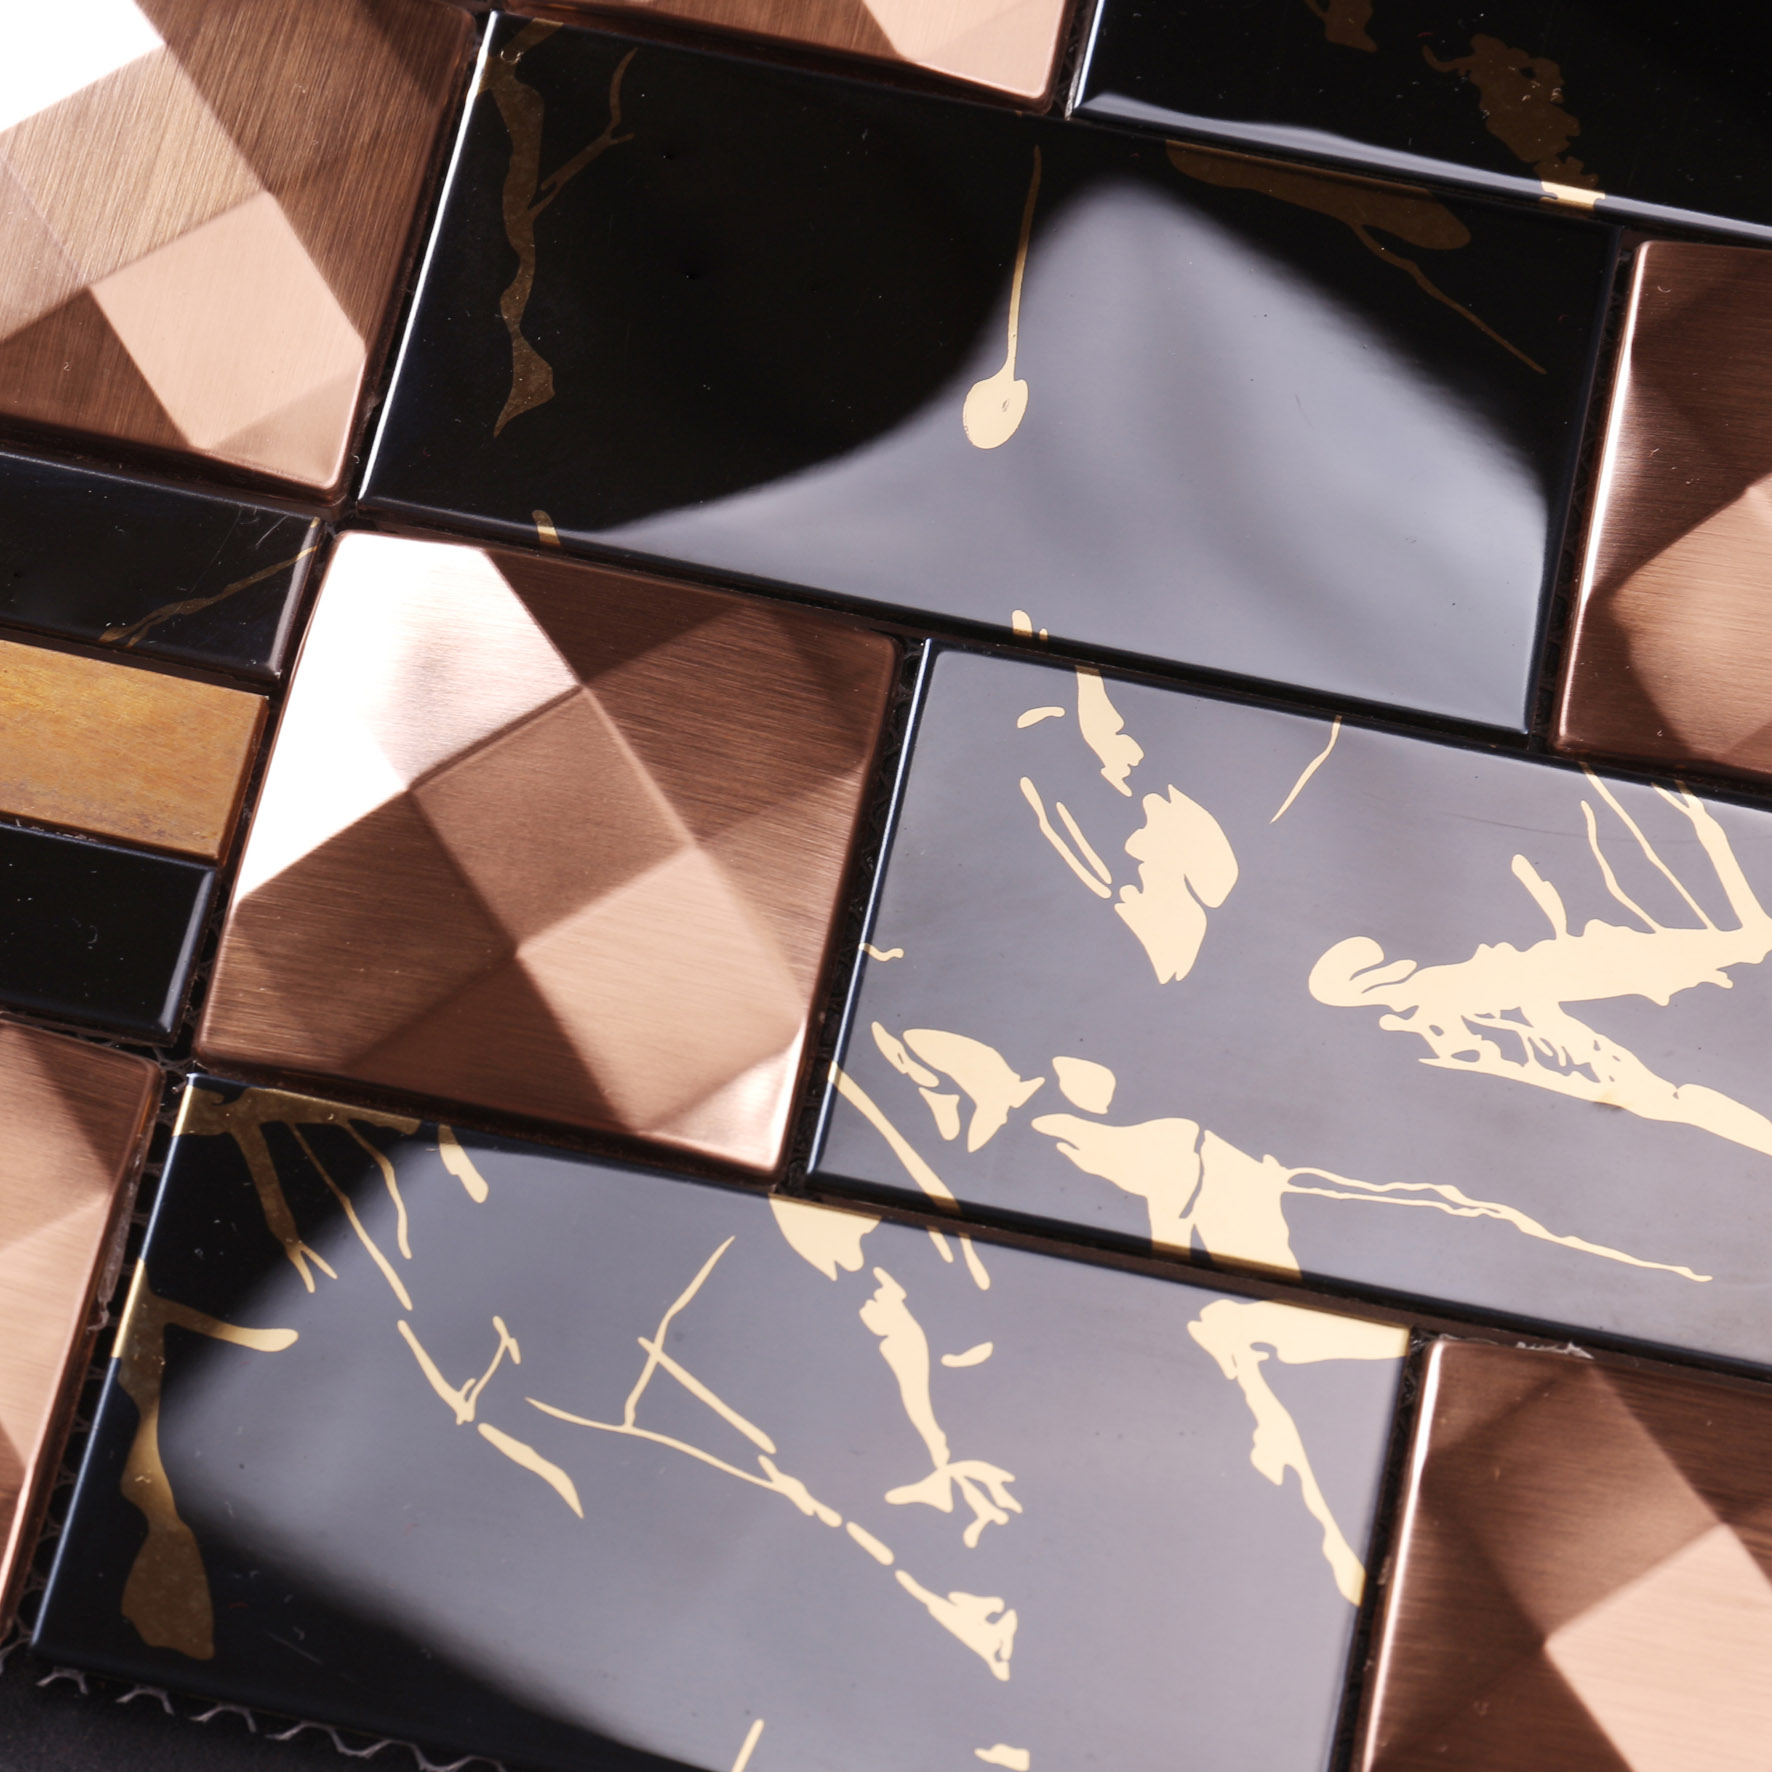 Top mosaic tiles online brown series for bathroom-Glass Mosaic Tile, Mosaic Tile suppliers, Mosaic T-1